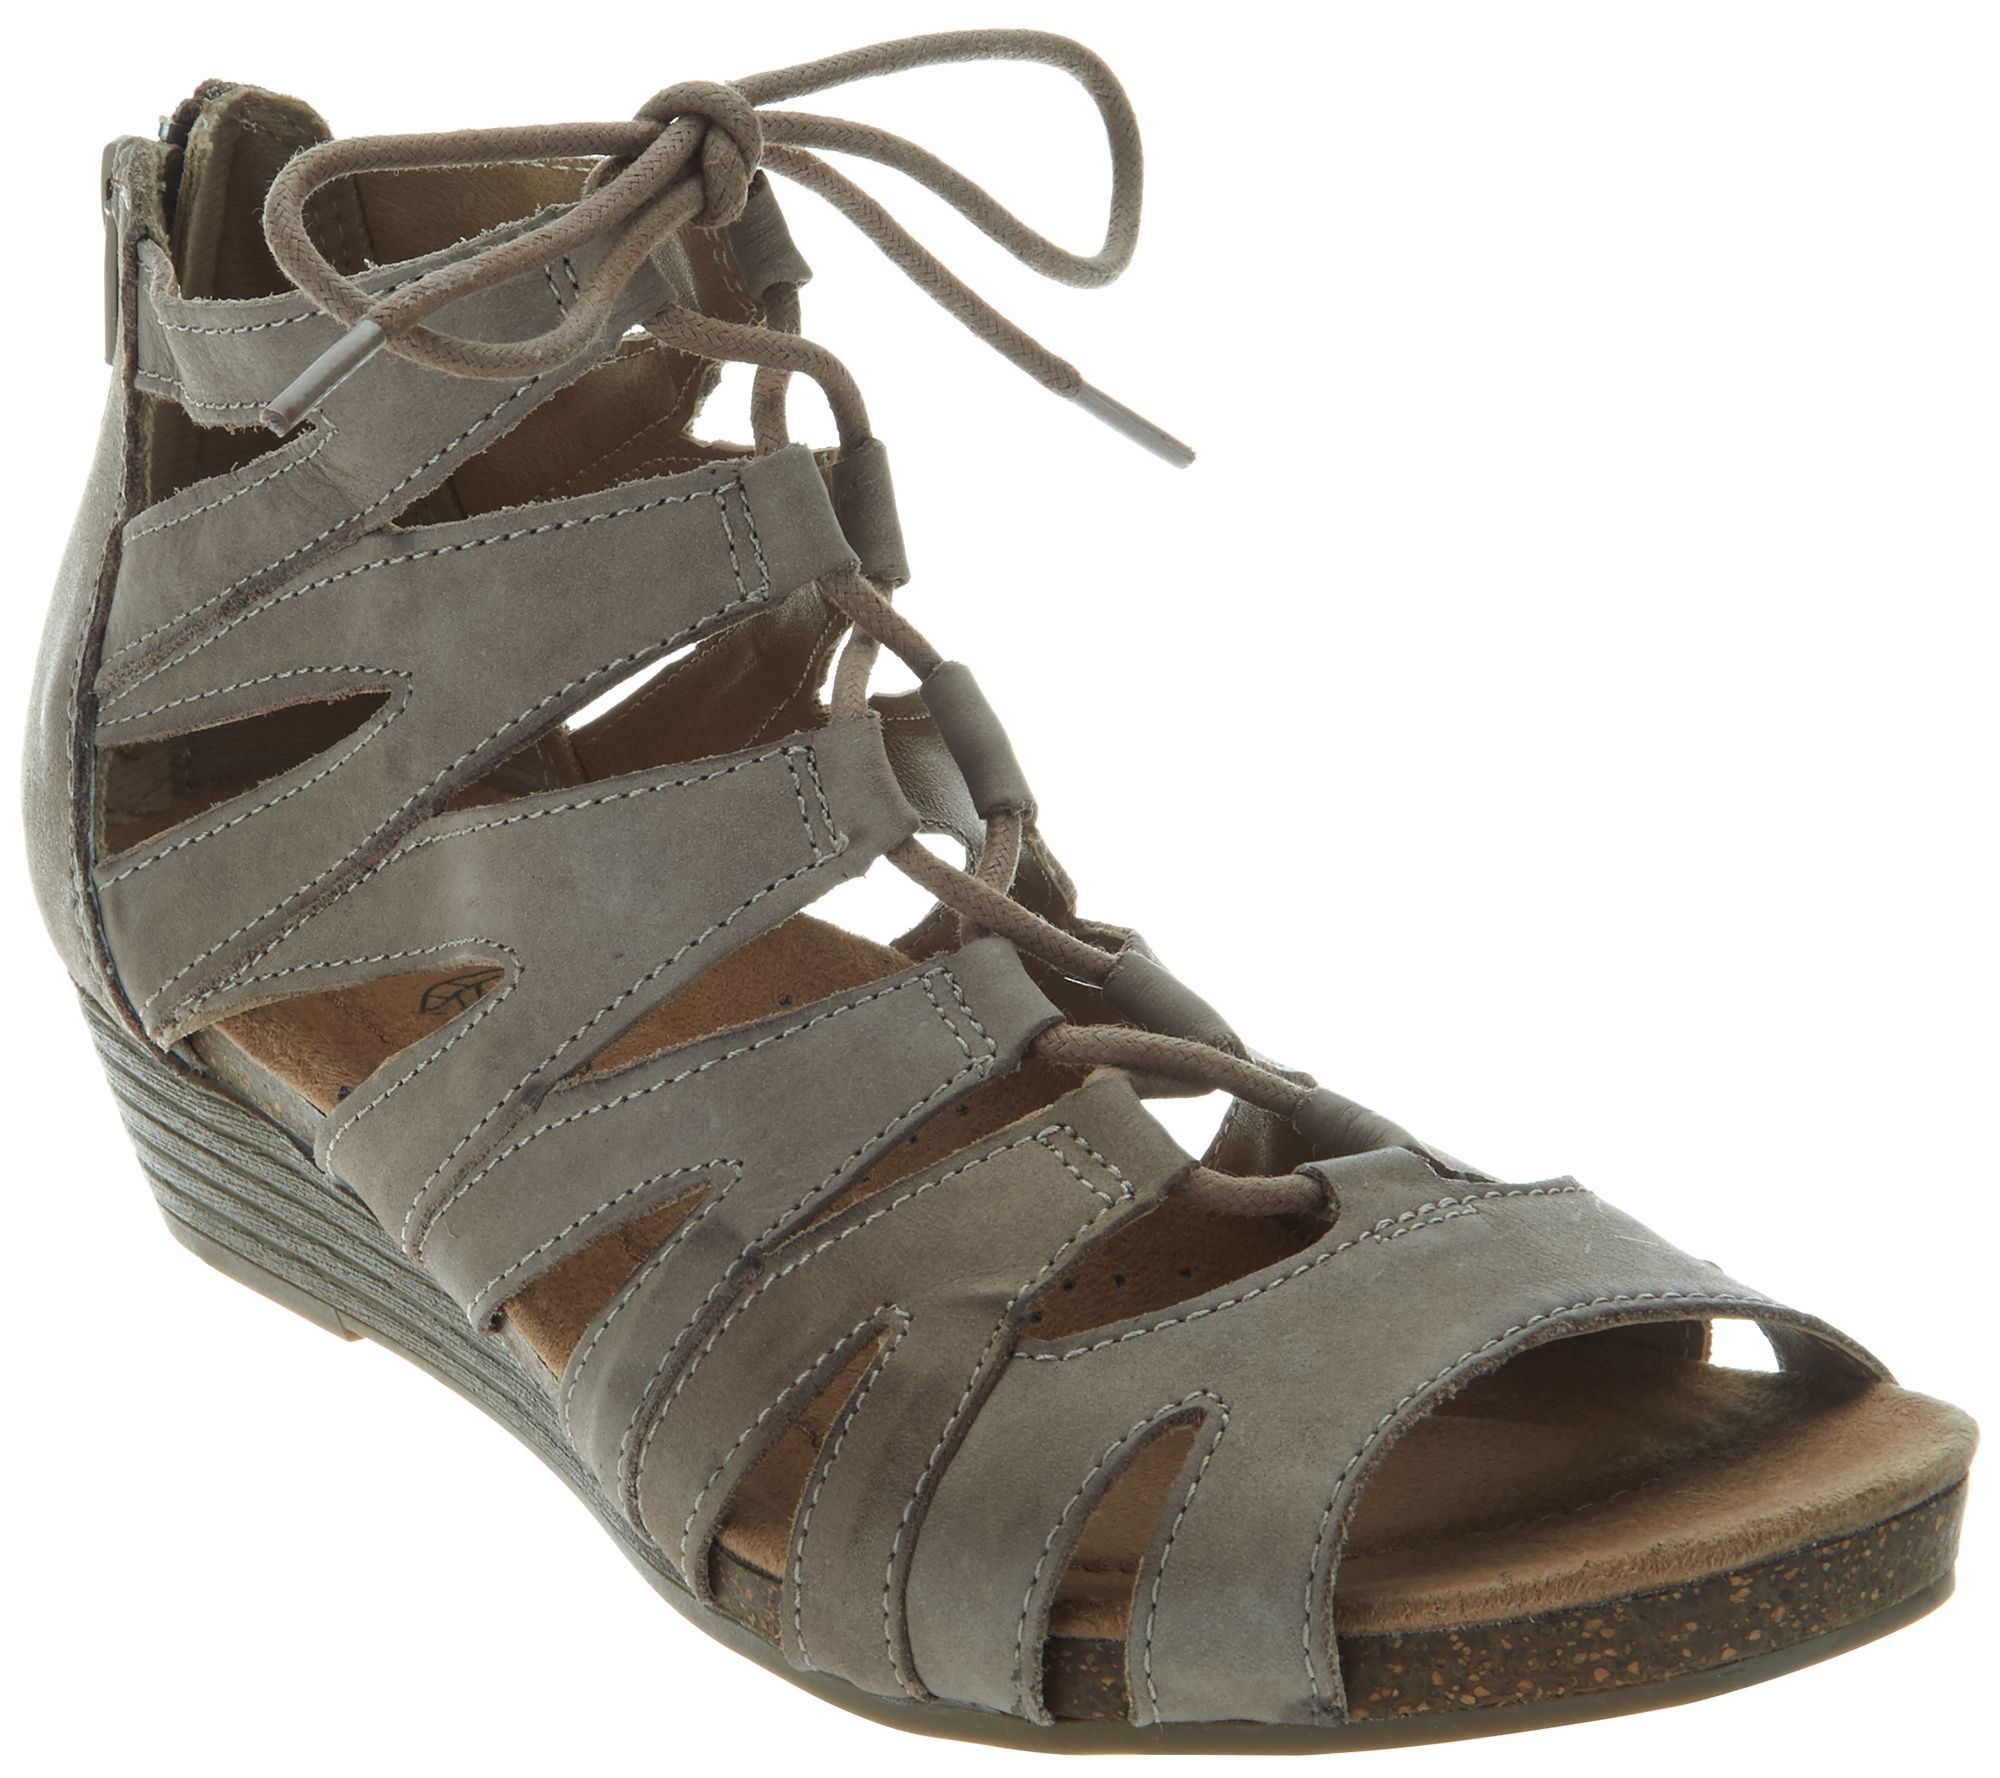 839cbf20364 Earth Origins Leather Lace-up Wedges - Harley - Page 1 — QVC.com